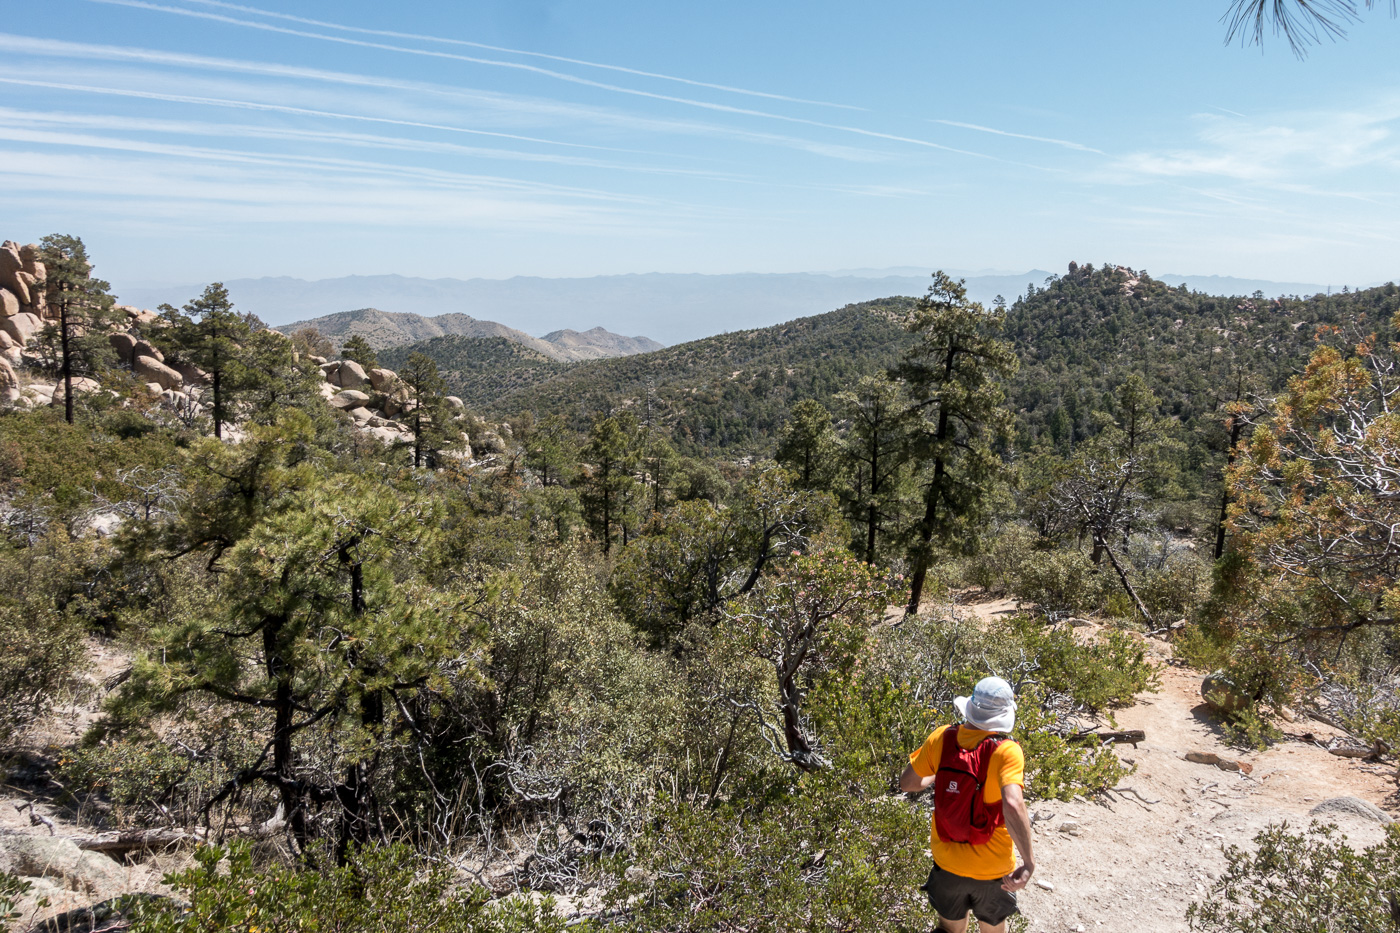 Running an upper section of the trail - the Brush Corral Trail is easy to follow and in decent shape down the junction with the Brush Corral Shortcut Trail. April 2017.